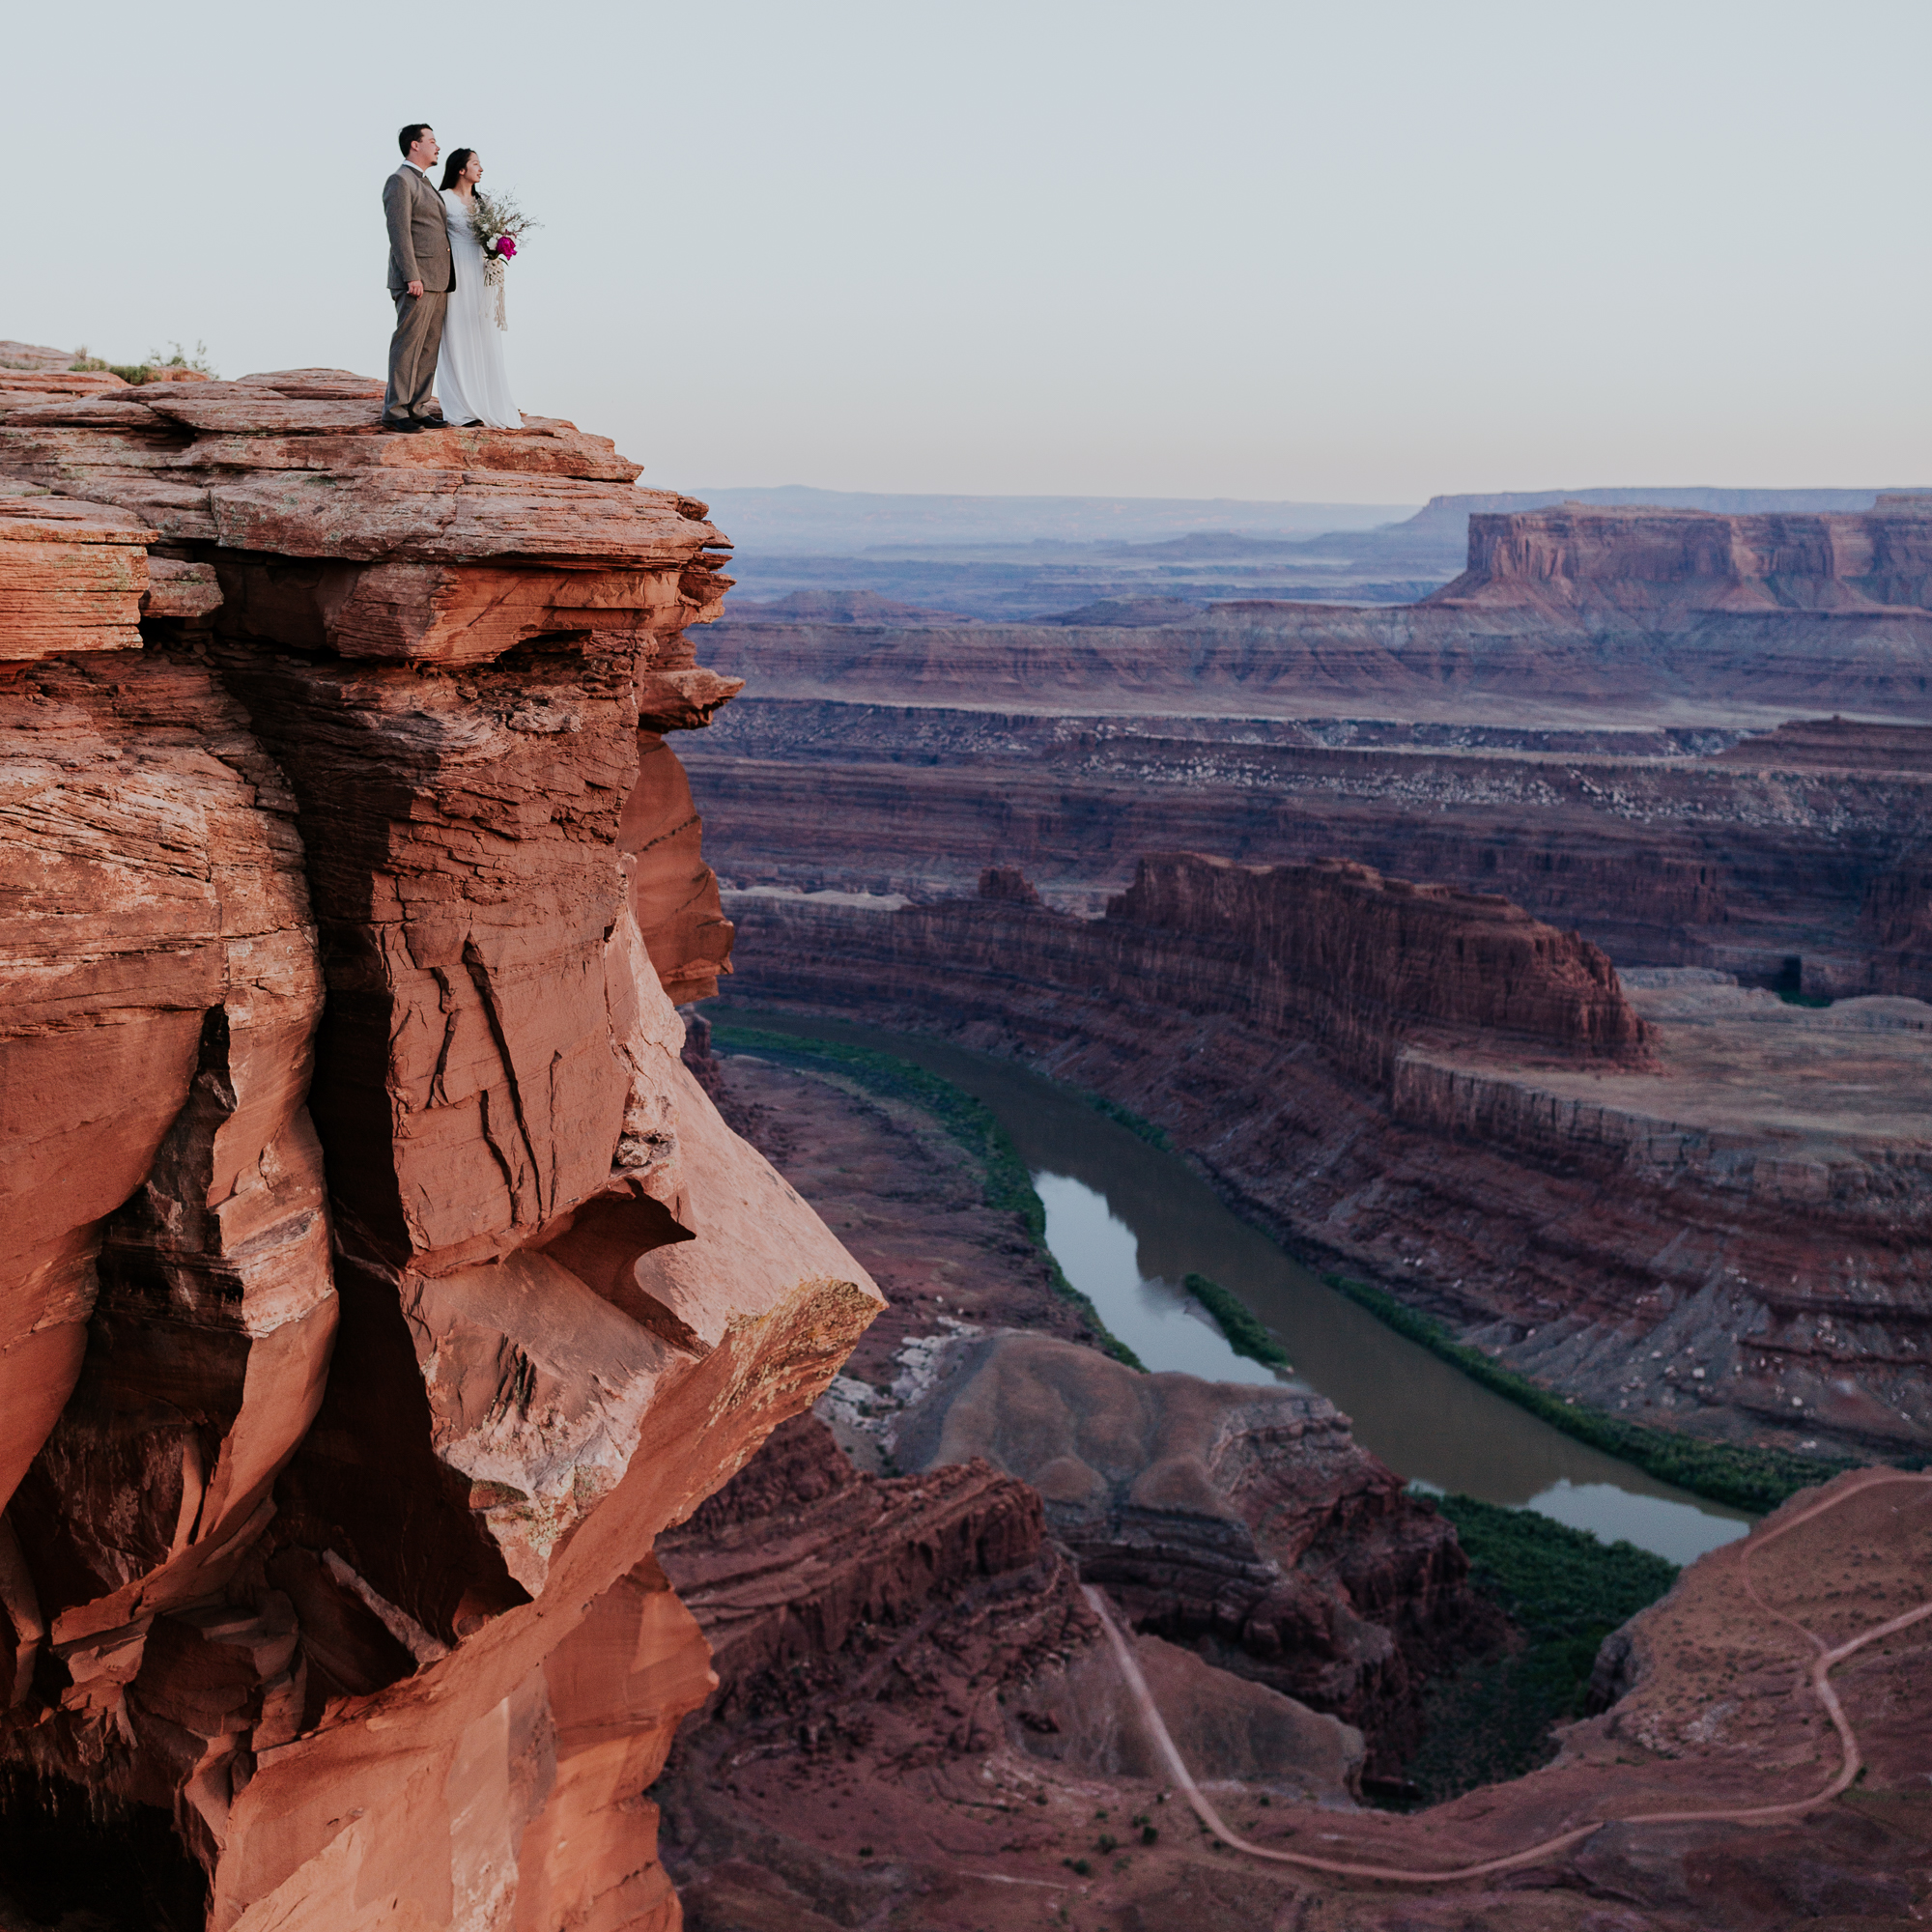 moab elopement photographer utah elopement adventure hiking desert